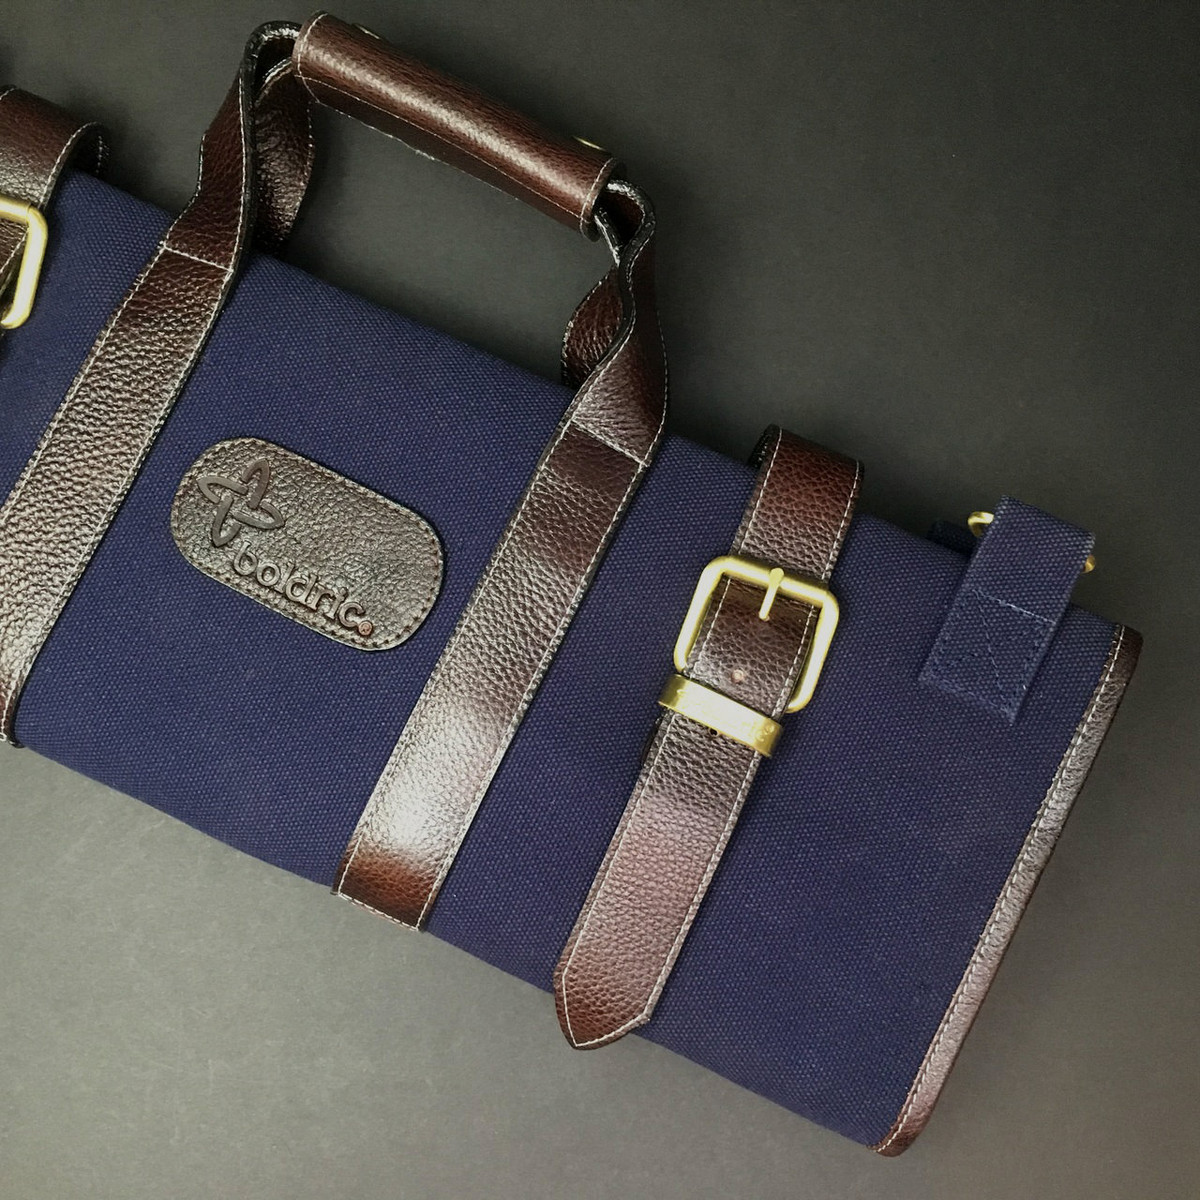 Boldric | 17 pocket knife roll | Navy